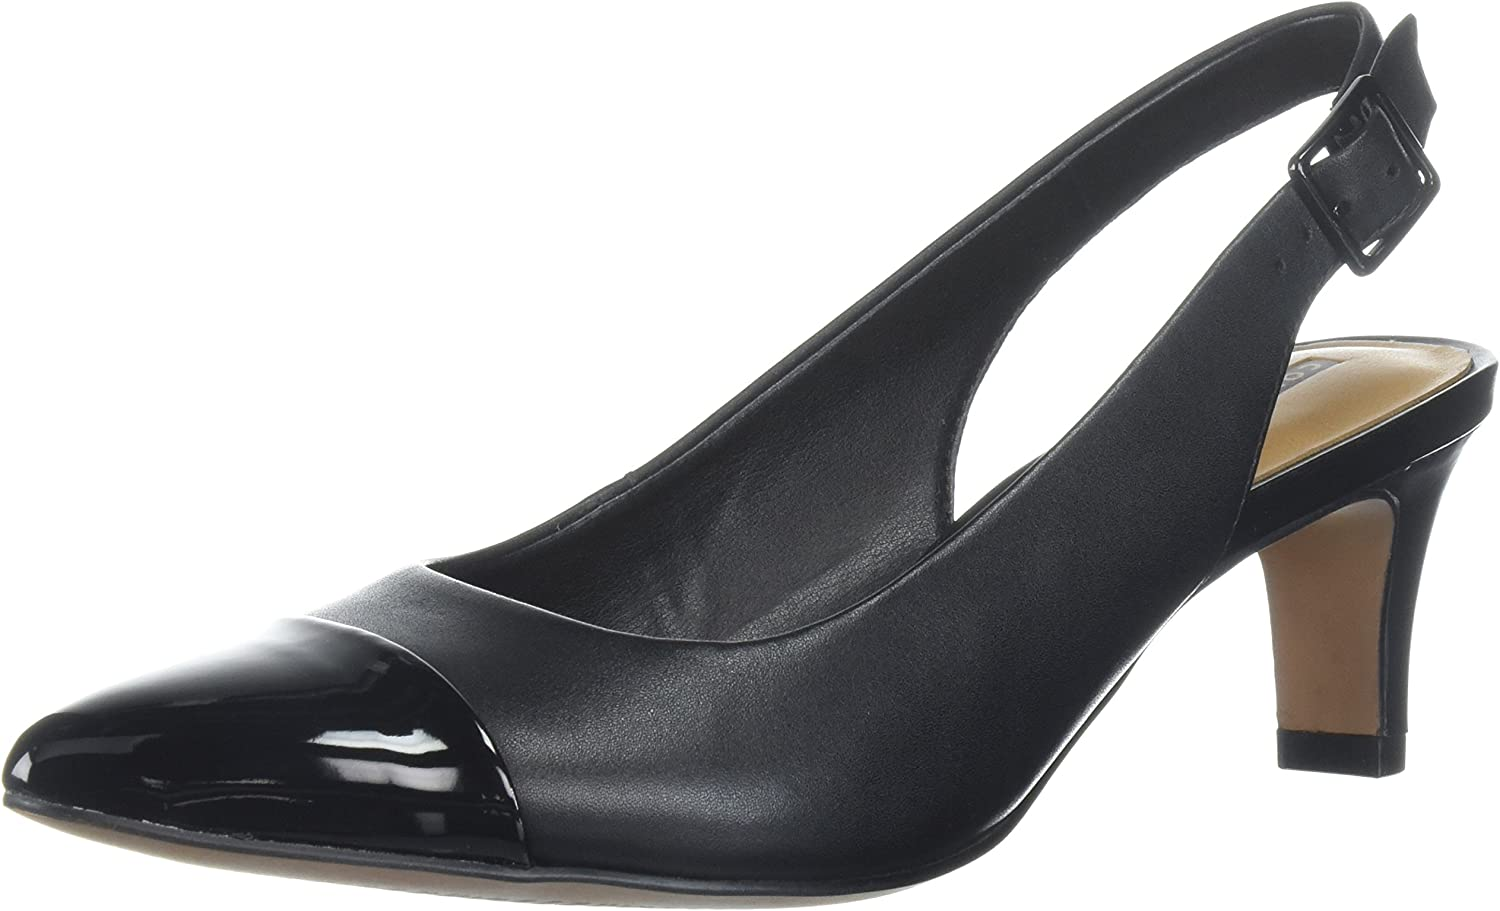 Cheap mail order sales Clarks Women's Crewso High quality new Emmy Pump